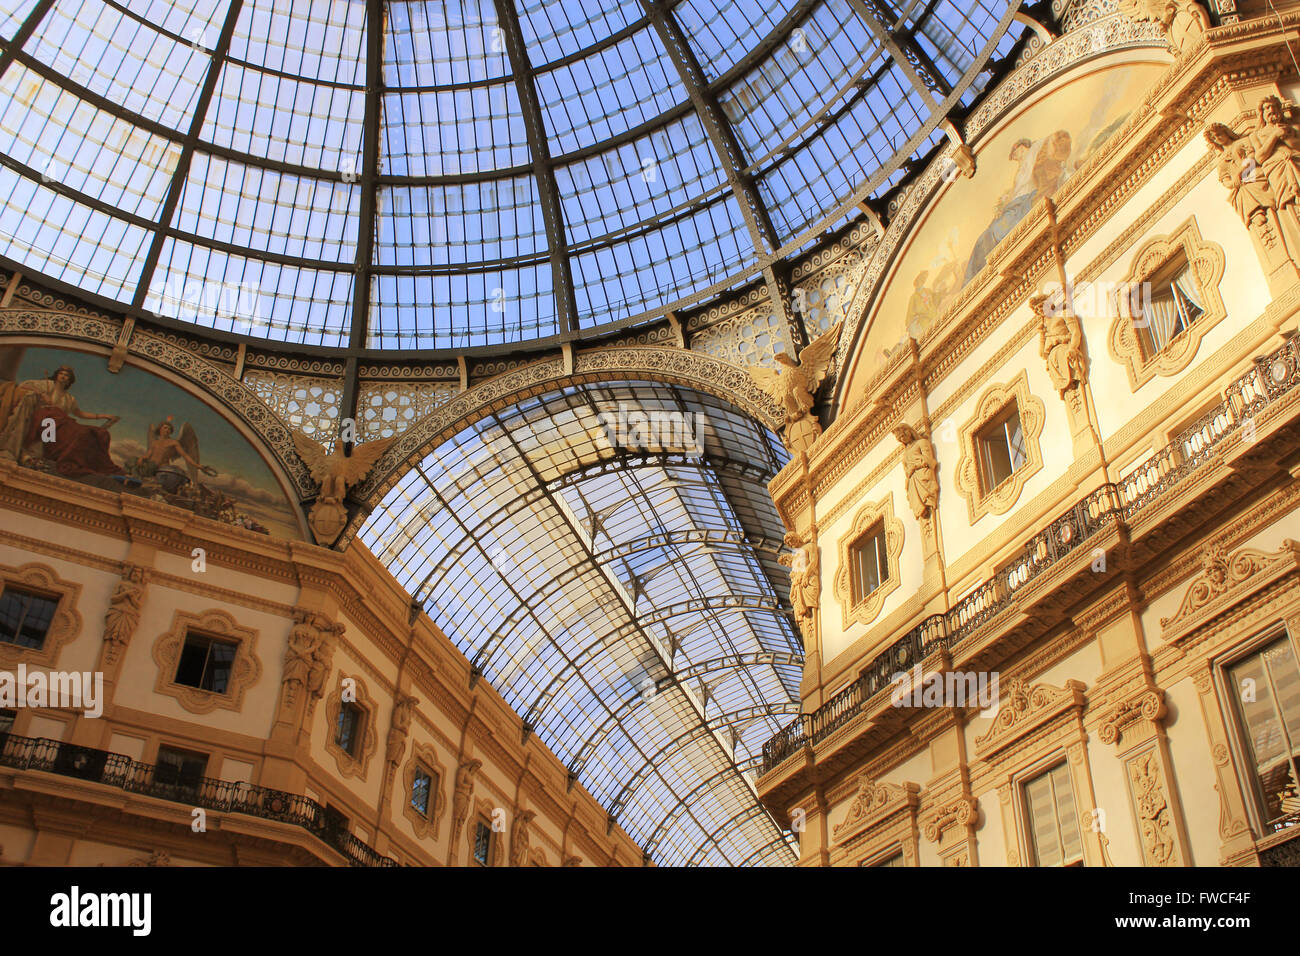 MILAN, ITALY SEPTEMBER 25, 2015: Glass roof of Victor Emanuel shopping gallery in the Milan. - Stock Image